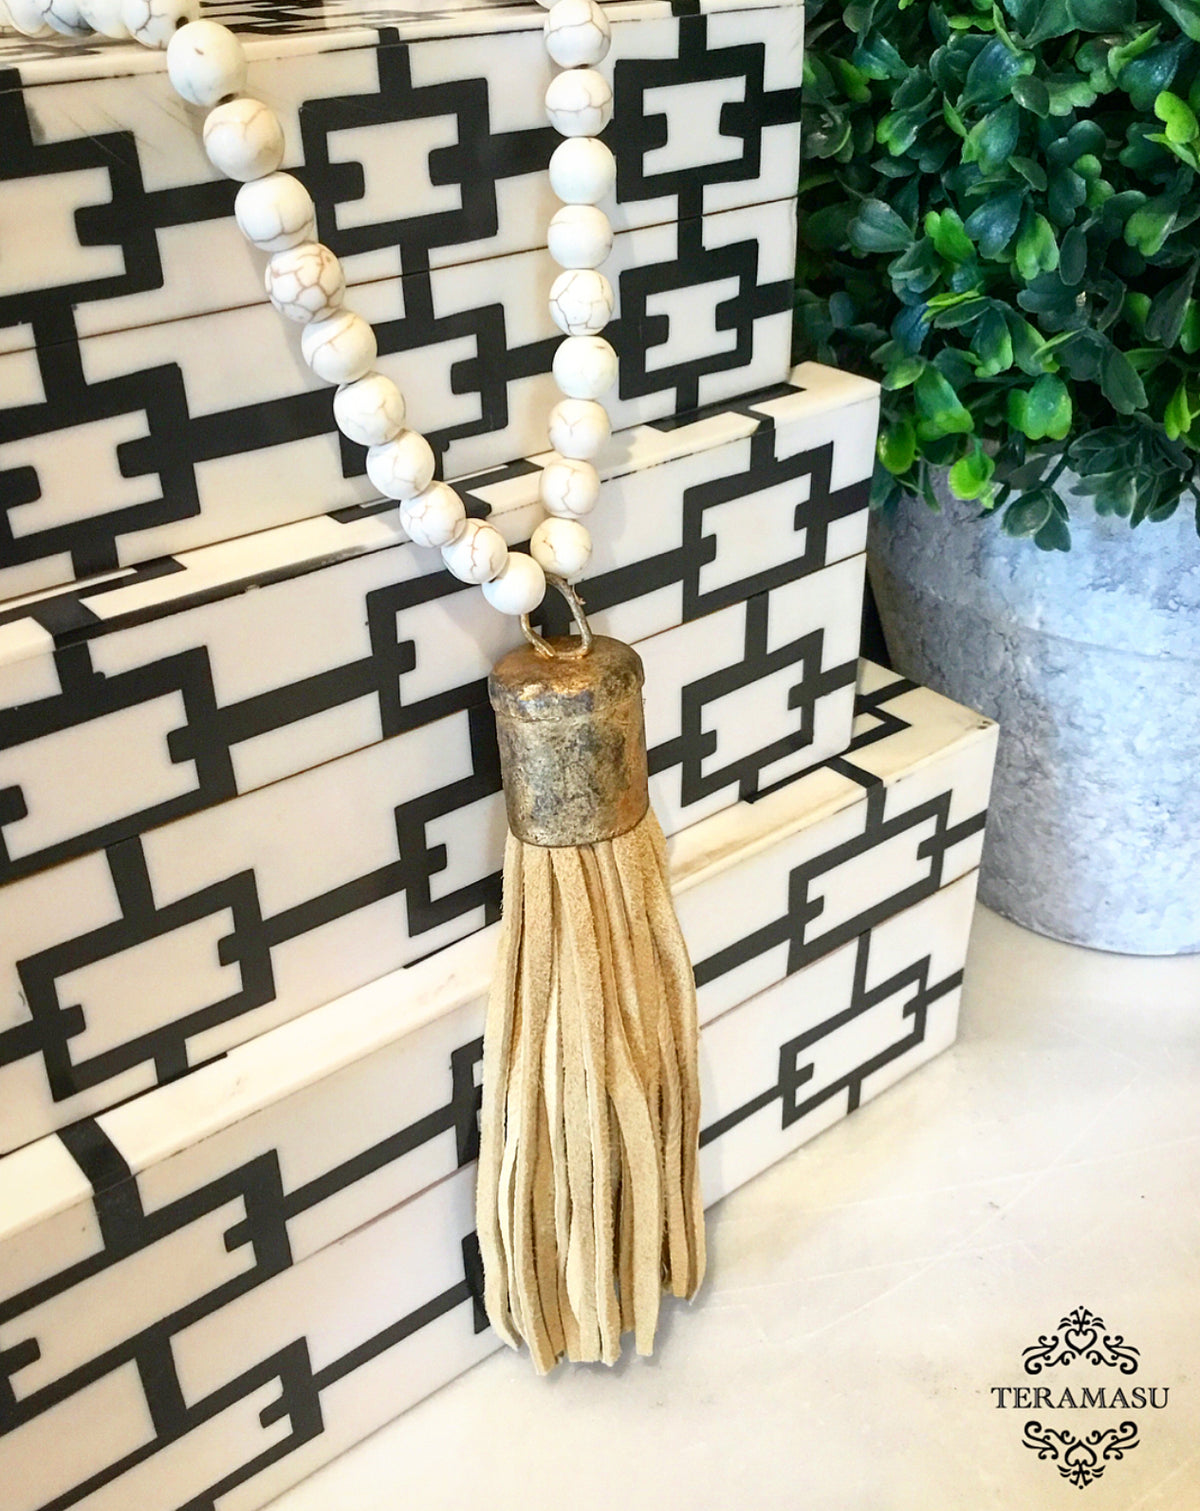 Living Ladylike: Gorgeous & New, Handmade Designer Teramasu Howlite Necklace with One-of-a-Kind, Vintage-Inspired Suede Tassel